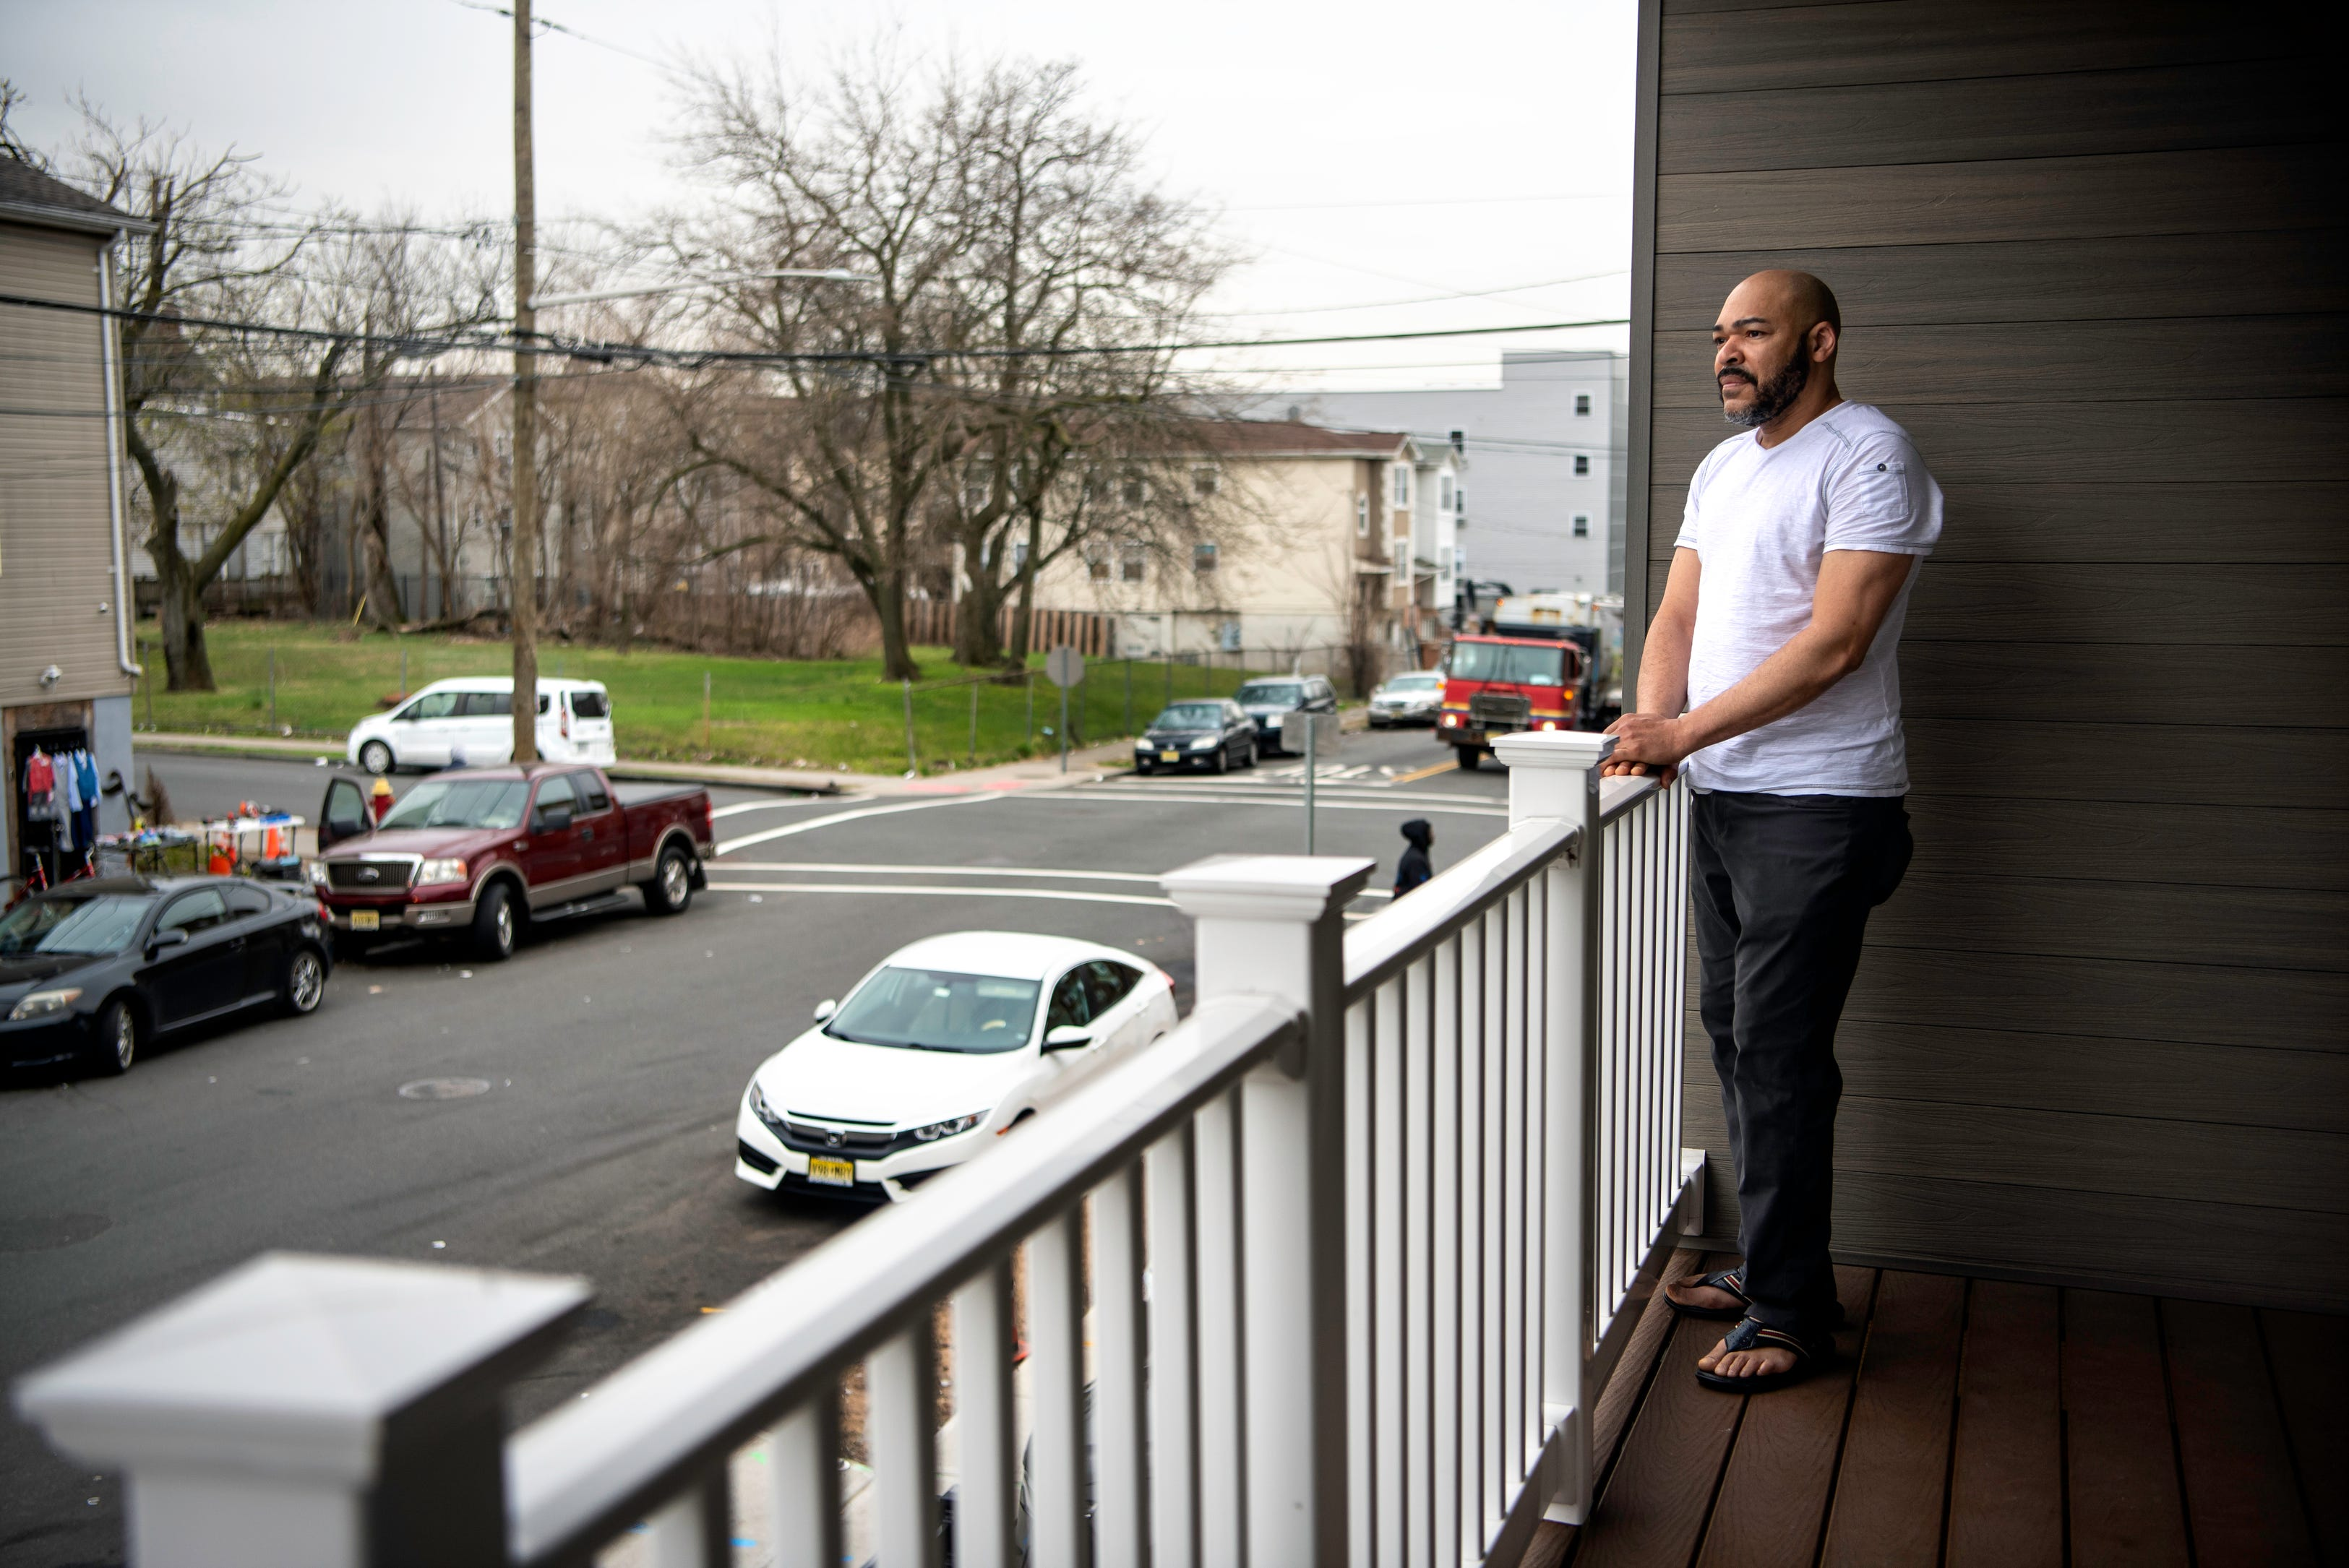 Andres Diaz takes in the view of Hamilton Ave.